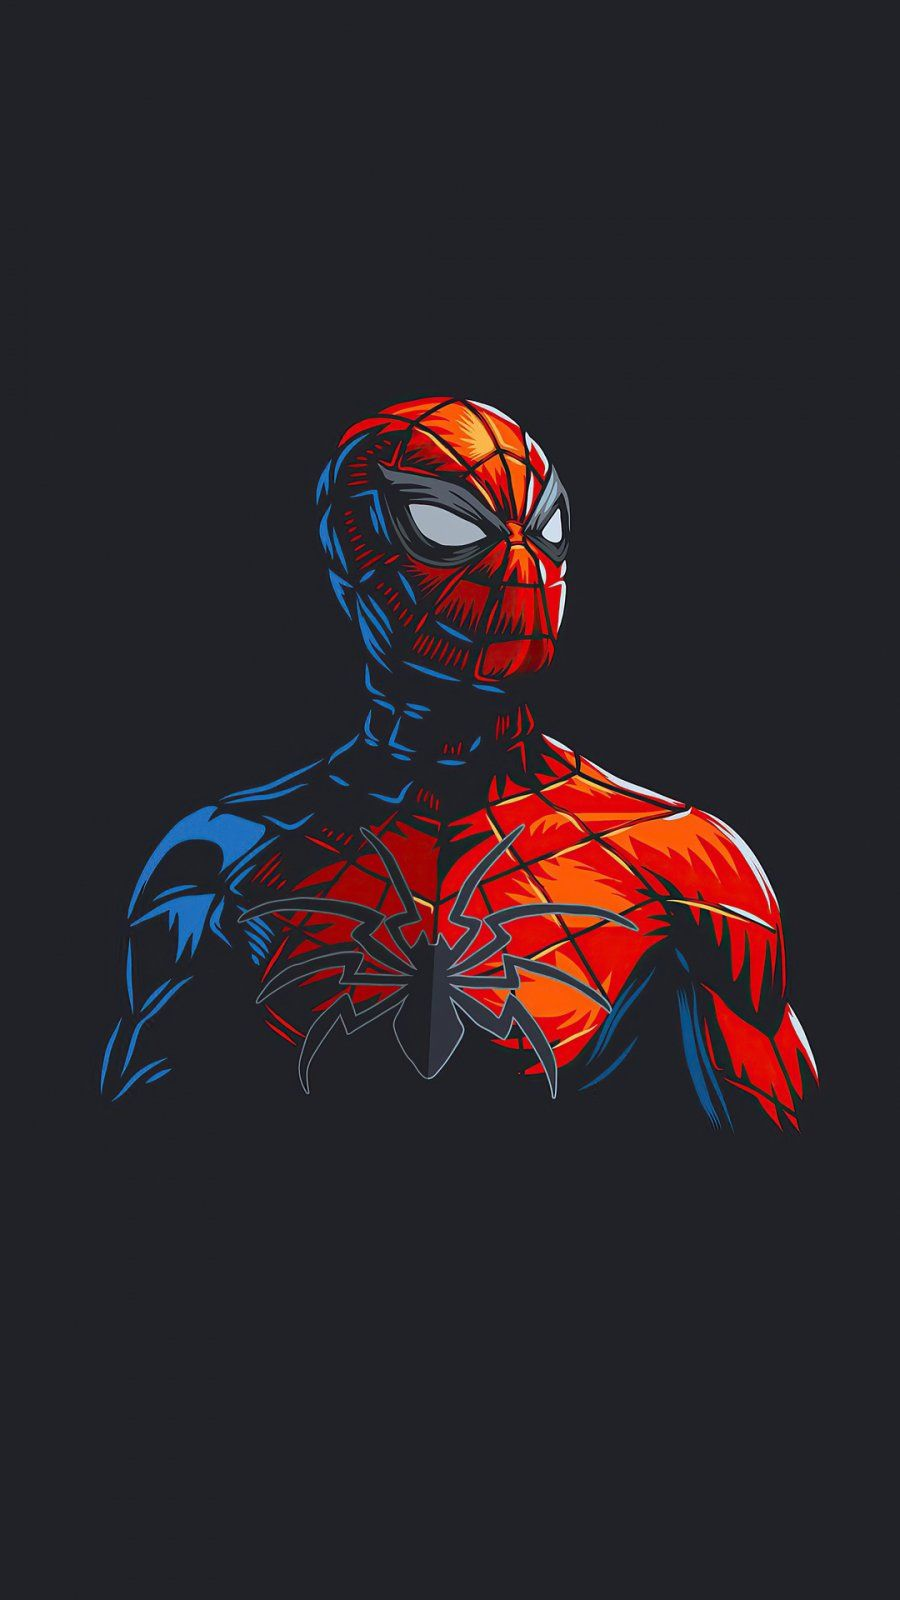 Spider Man Dark Minimalism iPhone Wallpaper - iPhone Wallpapers